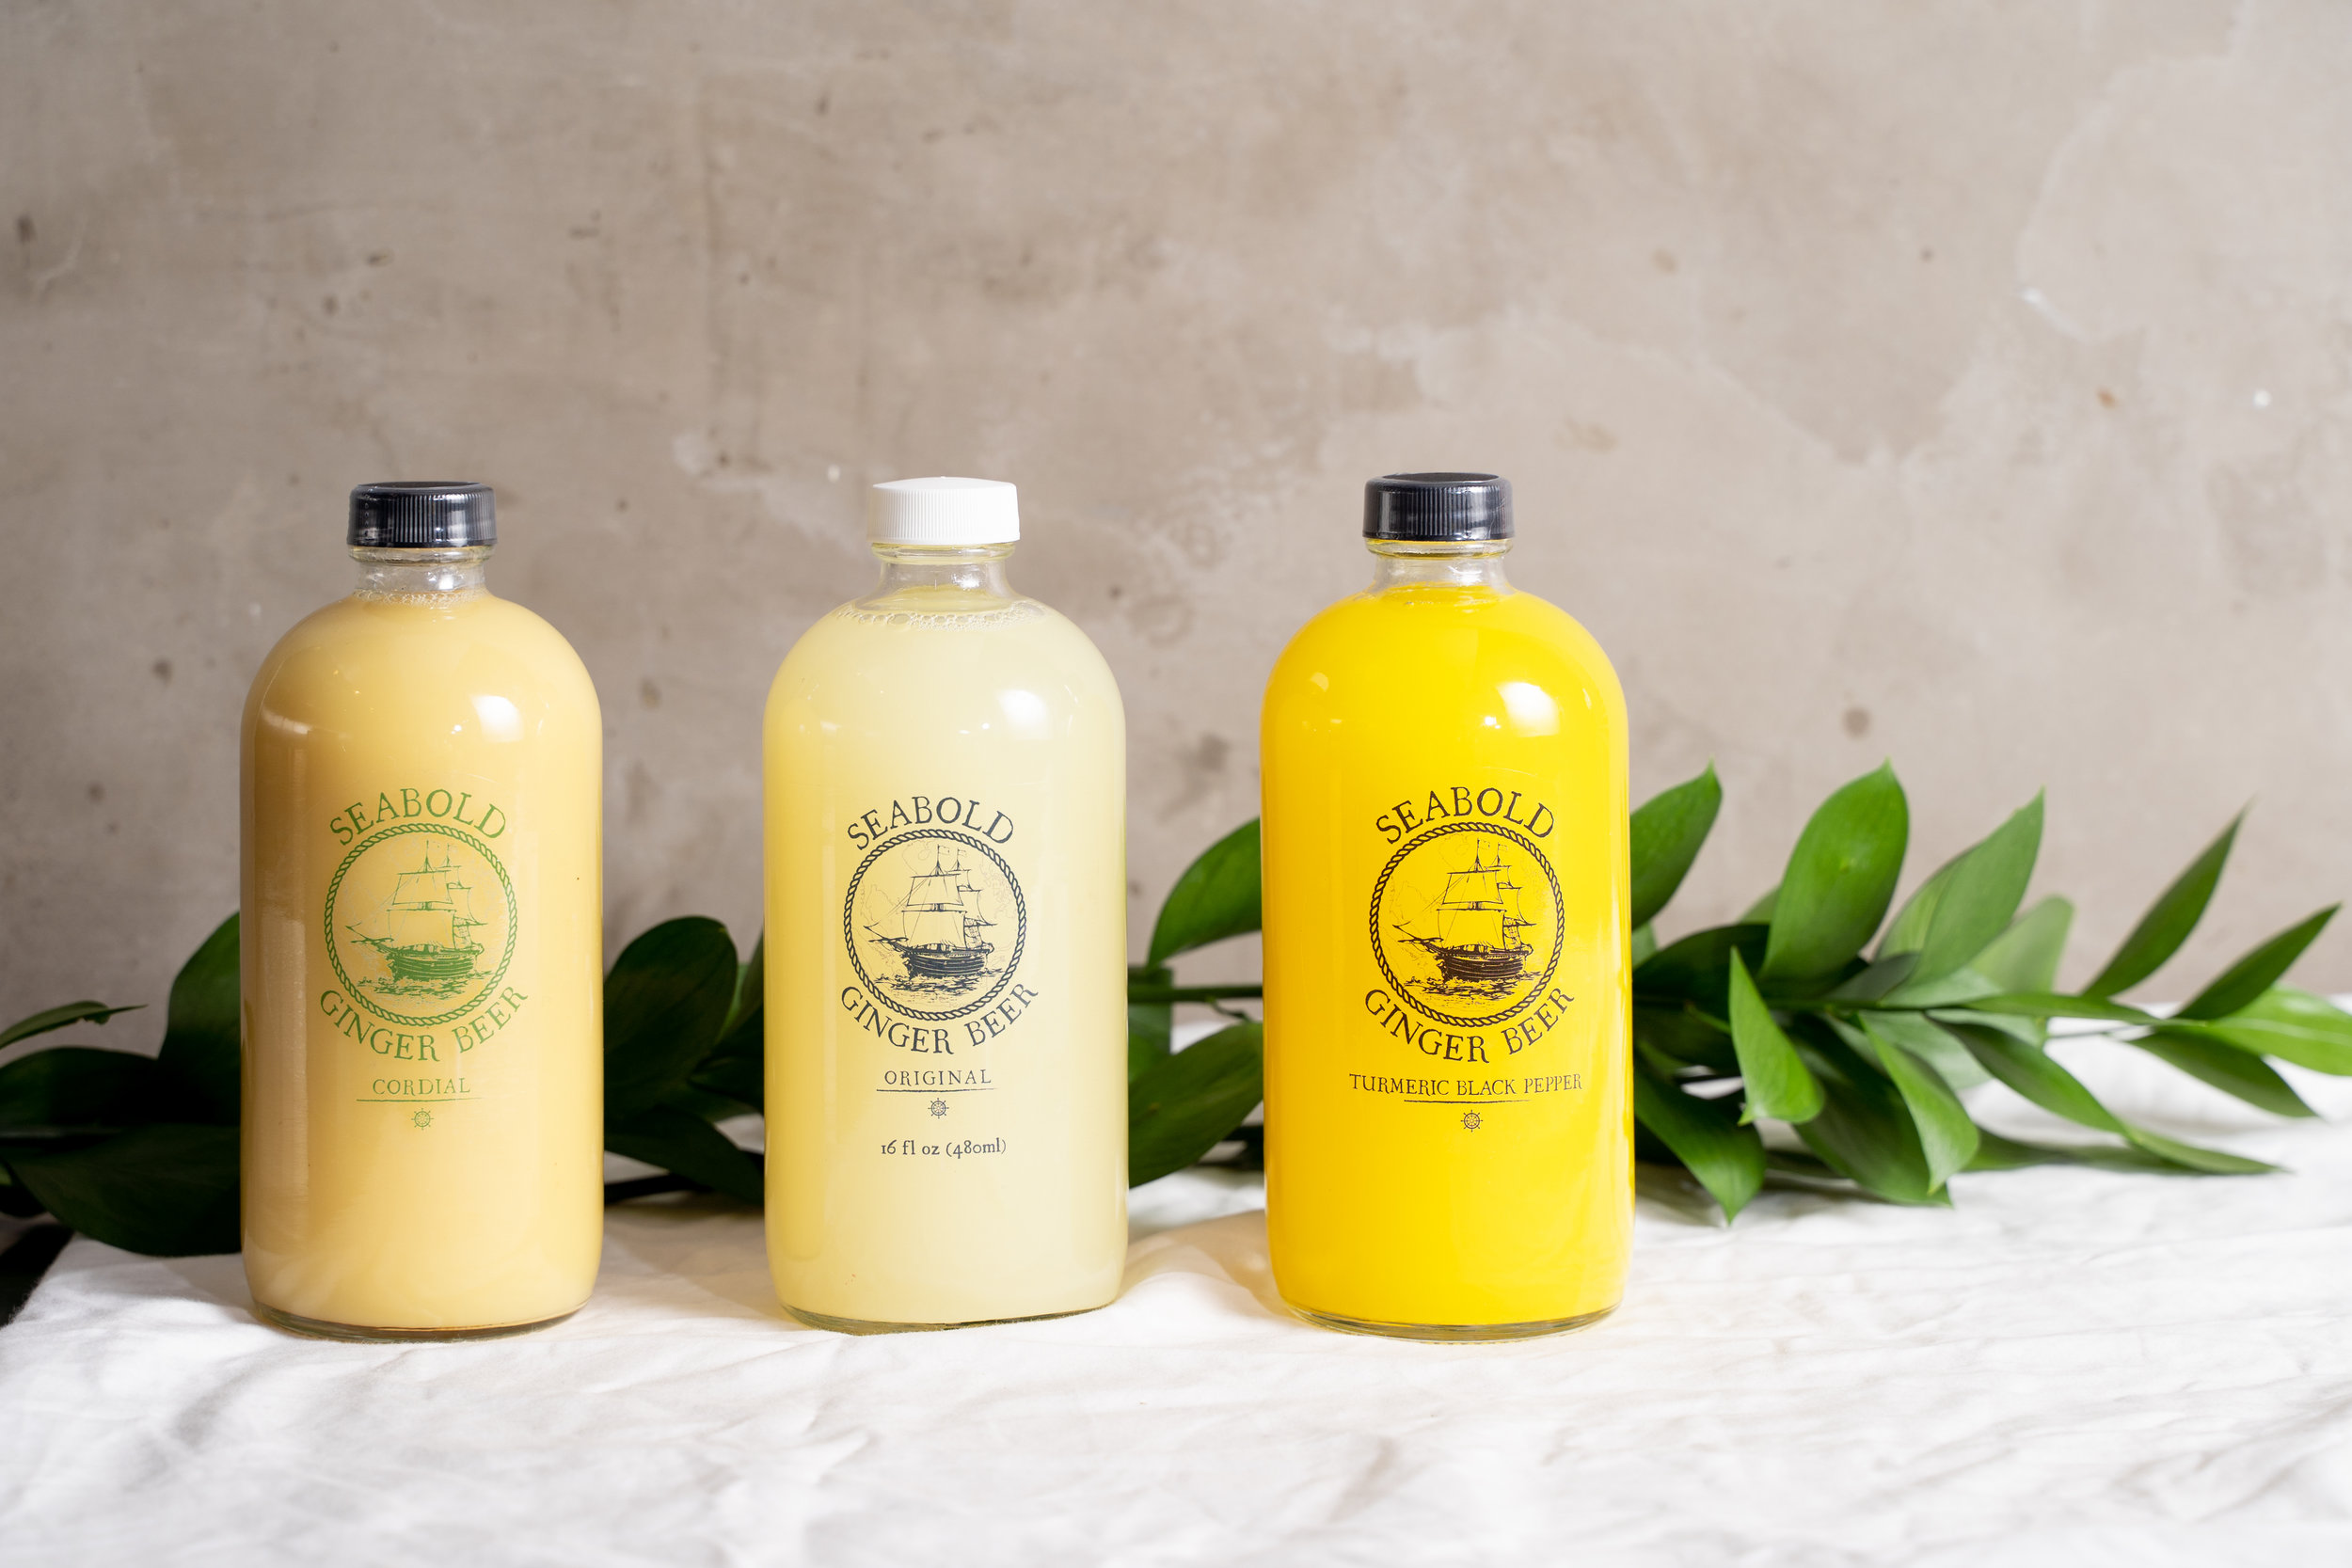 Seabold Ginger Beer Product Photos